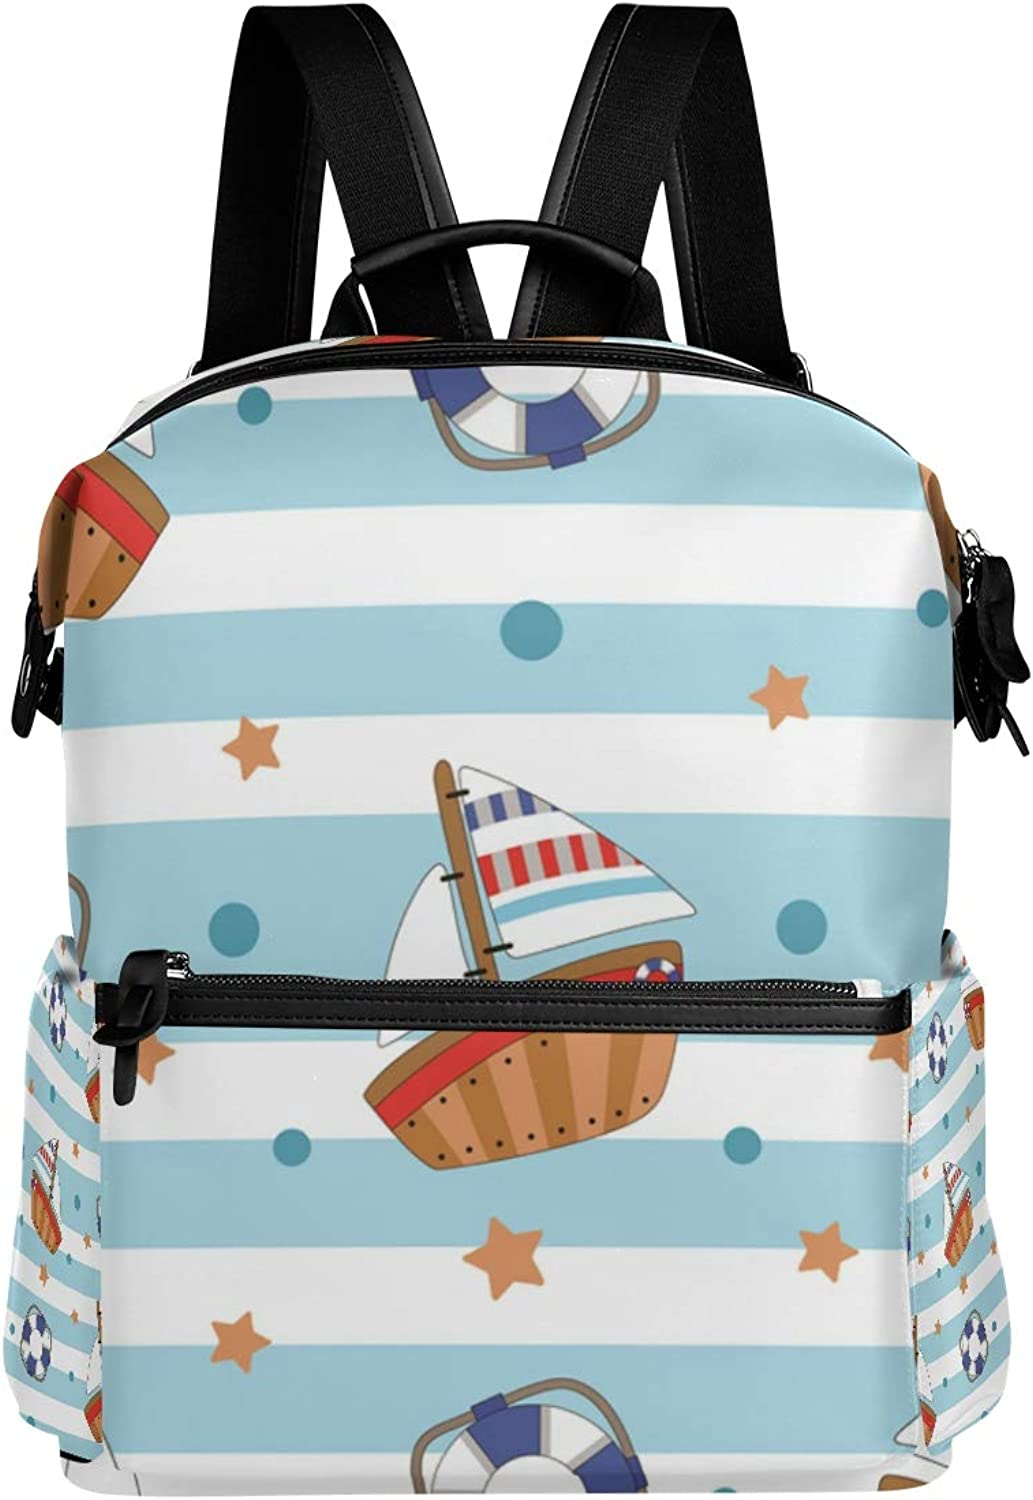 MONTOJ Cruise Ship Cute Painting Leather Travel Bag Campus Backpack